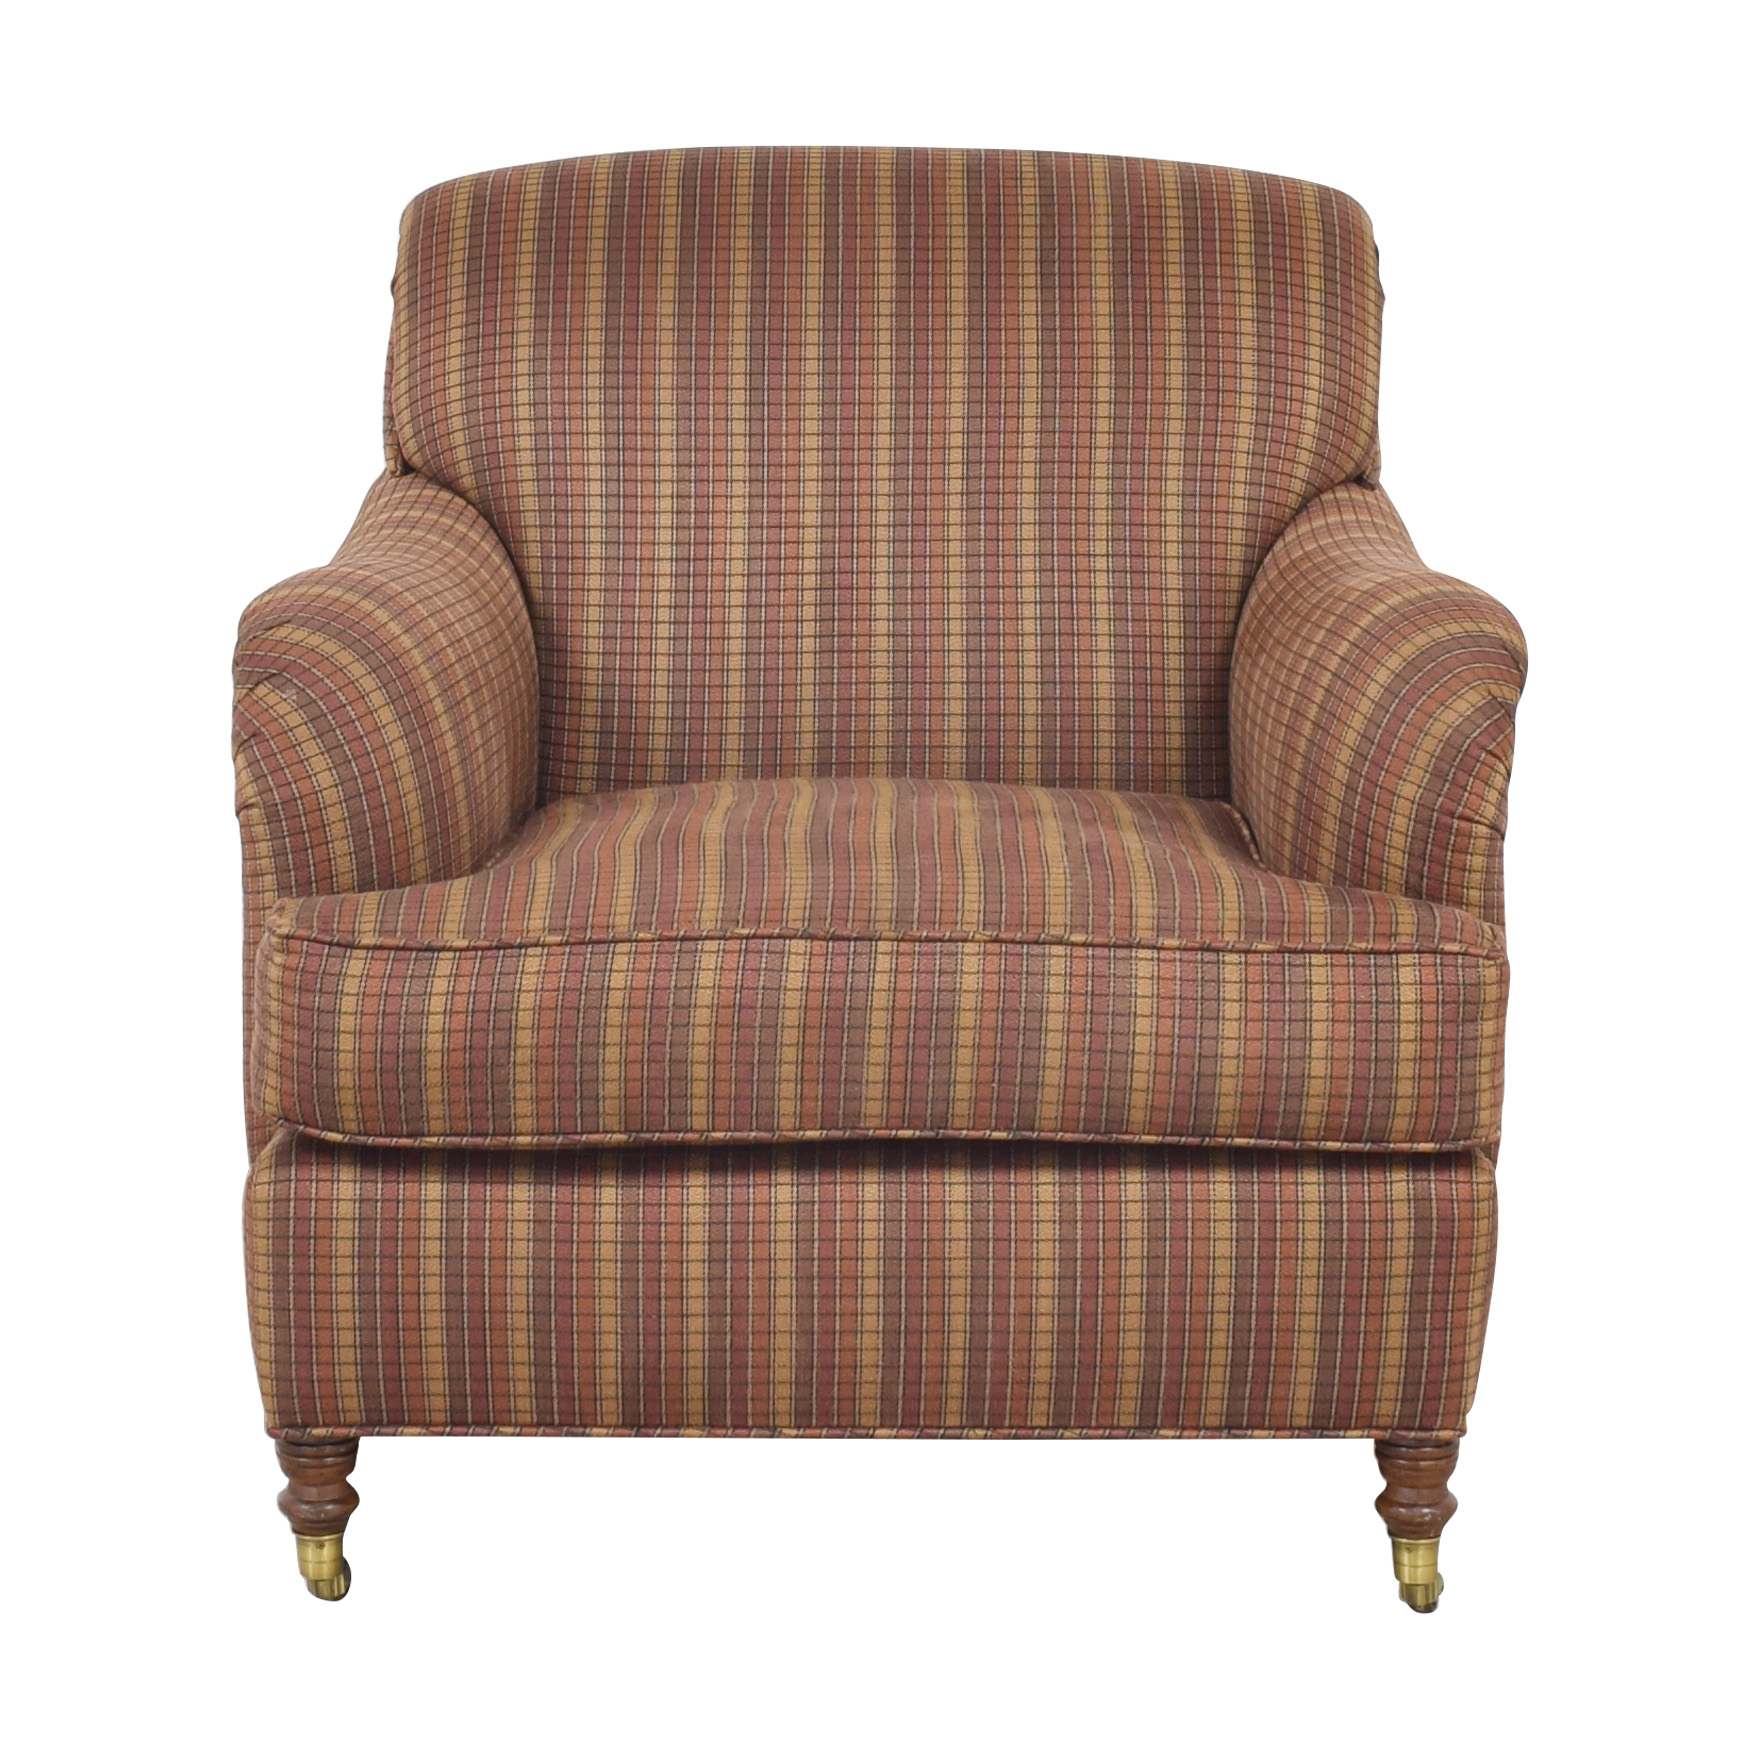 Kravet Kravet Accent Chair second hand